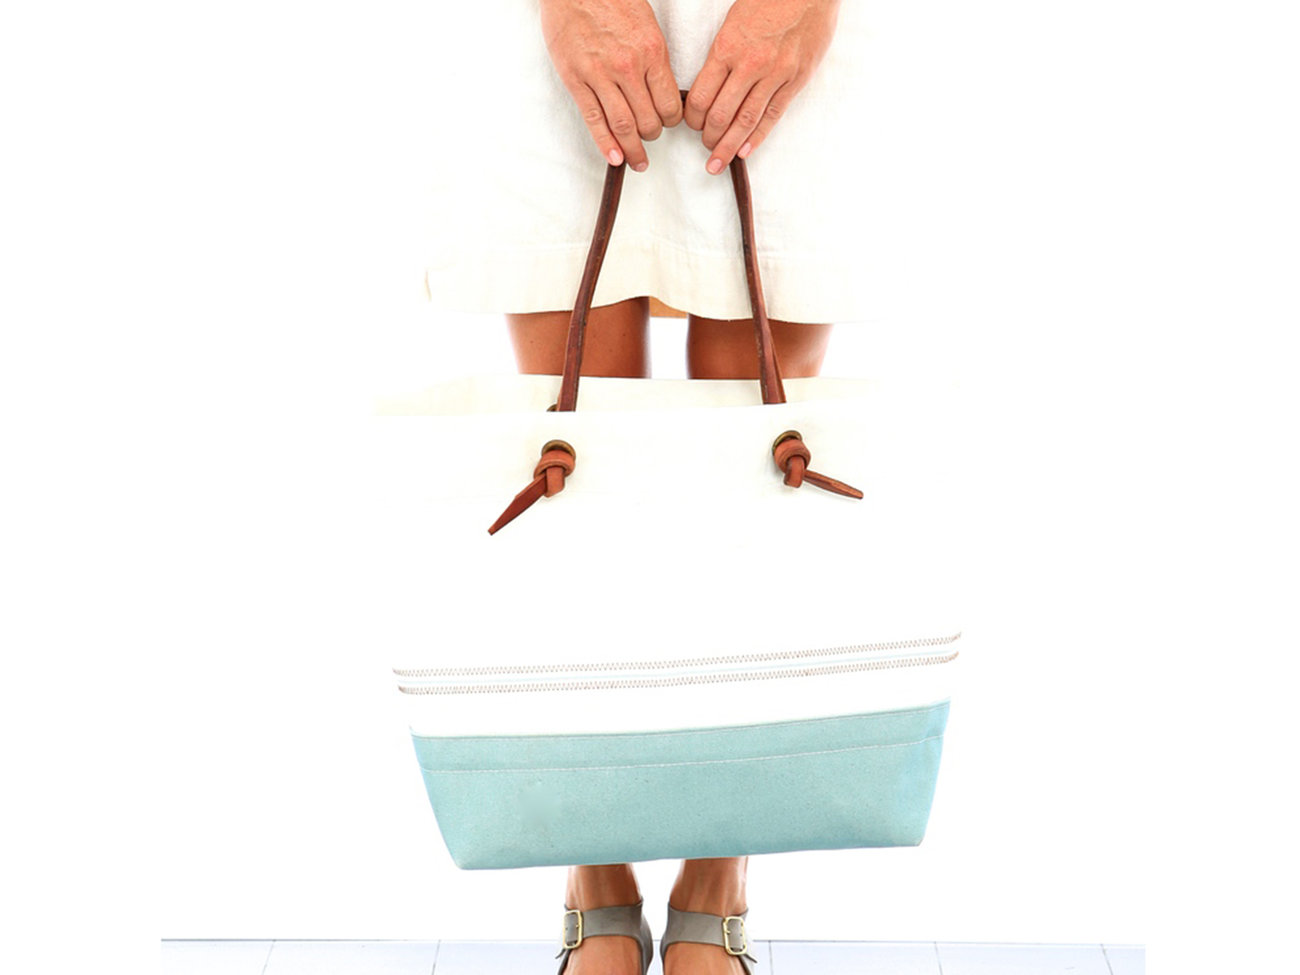 ocean-knotted-tote-bag-ecogiftguide1215.jpg